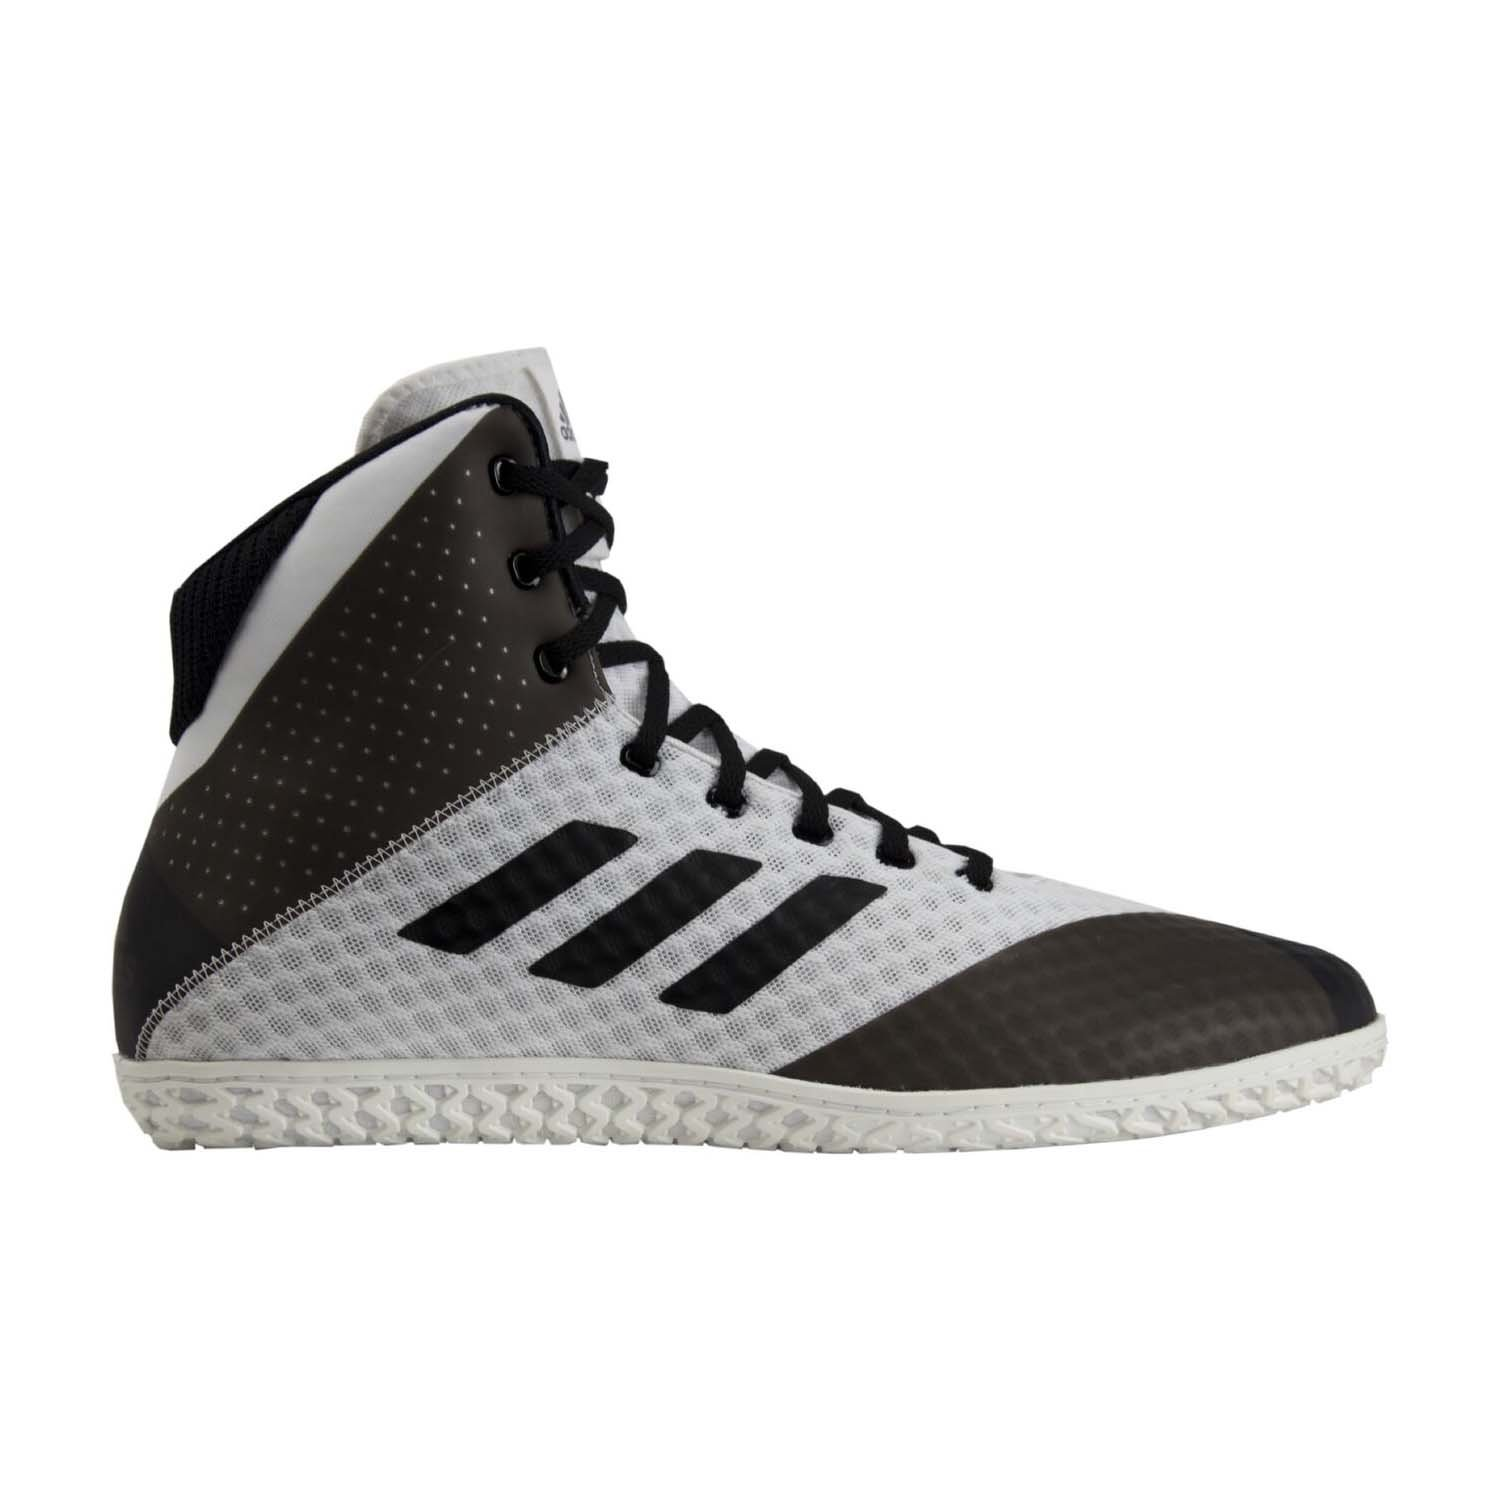 adidas Mat Wizard 4 Men's Wrestling Shoes, White/Black, Size 9